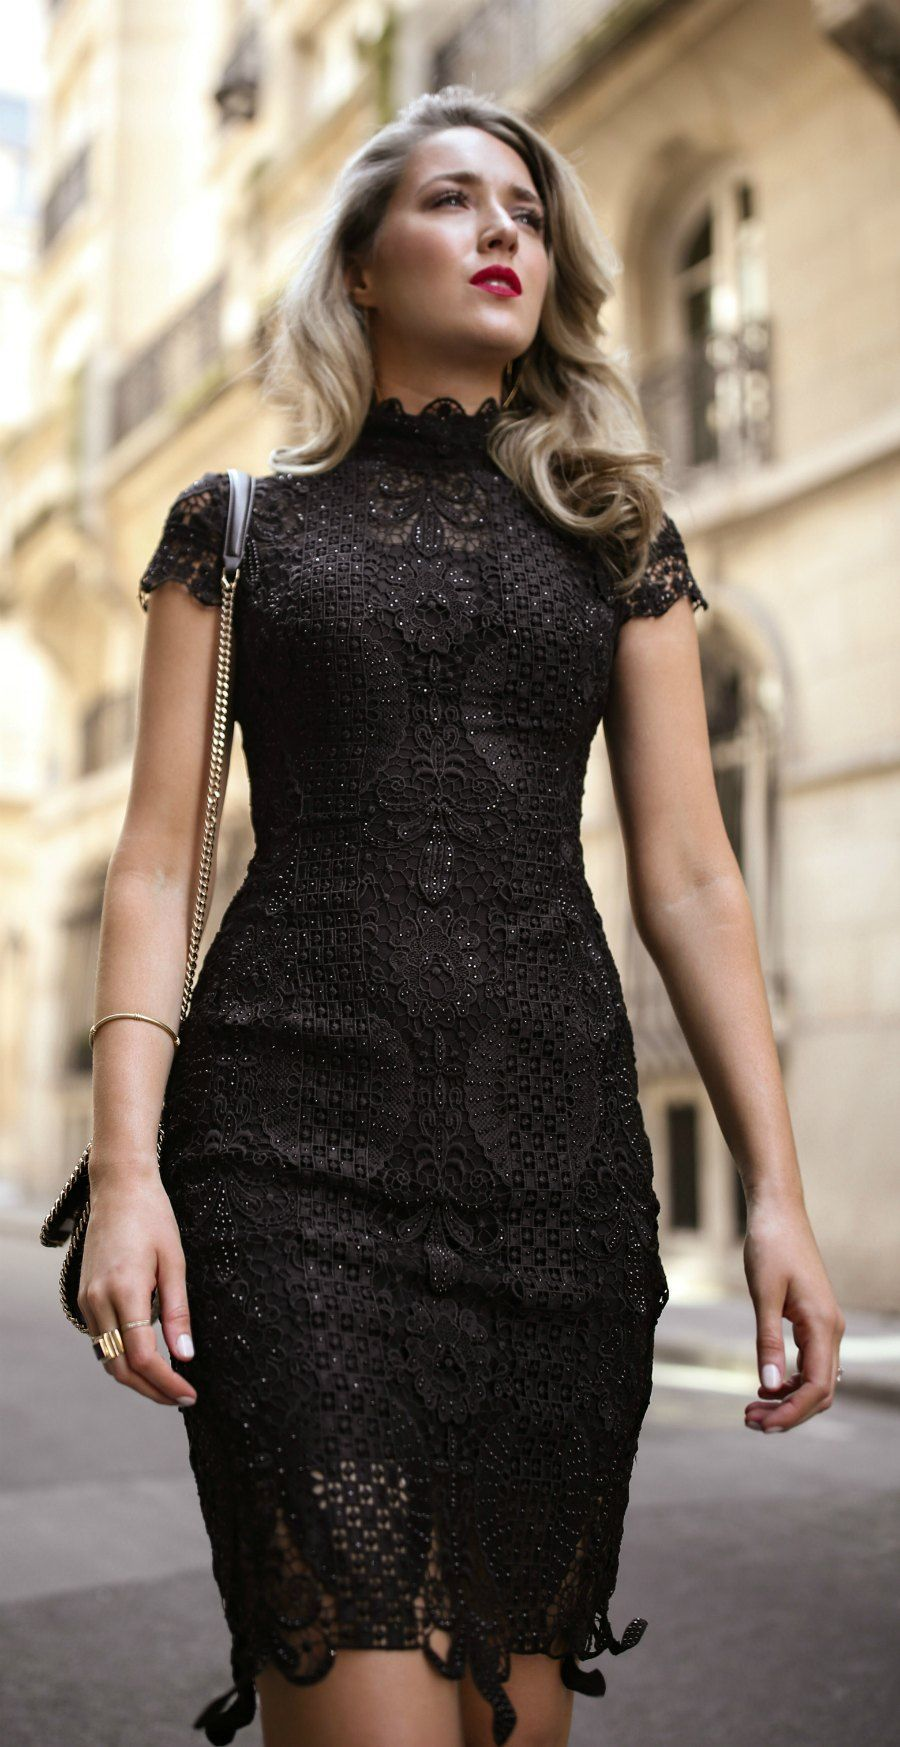 30 Dresses In 30 Days Day 11 What To Wear To A Cocktail Attire Wedding Black Lace Short Slee Black Dresses Classy Cocktail Wedding Attire Cocktail Attire [ 1747 x 900 Pixel ]